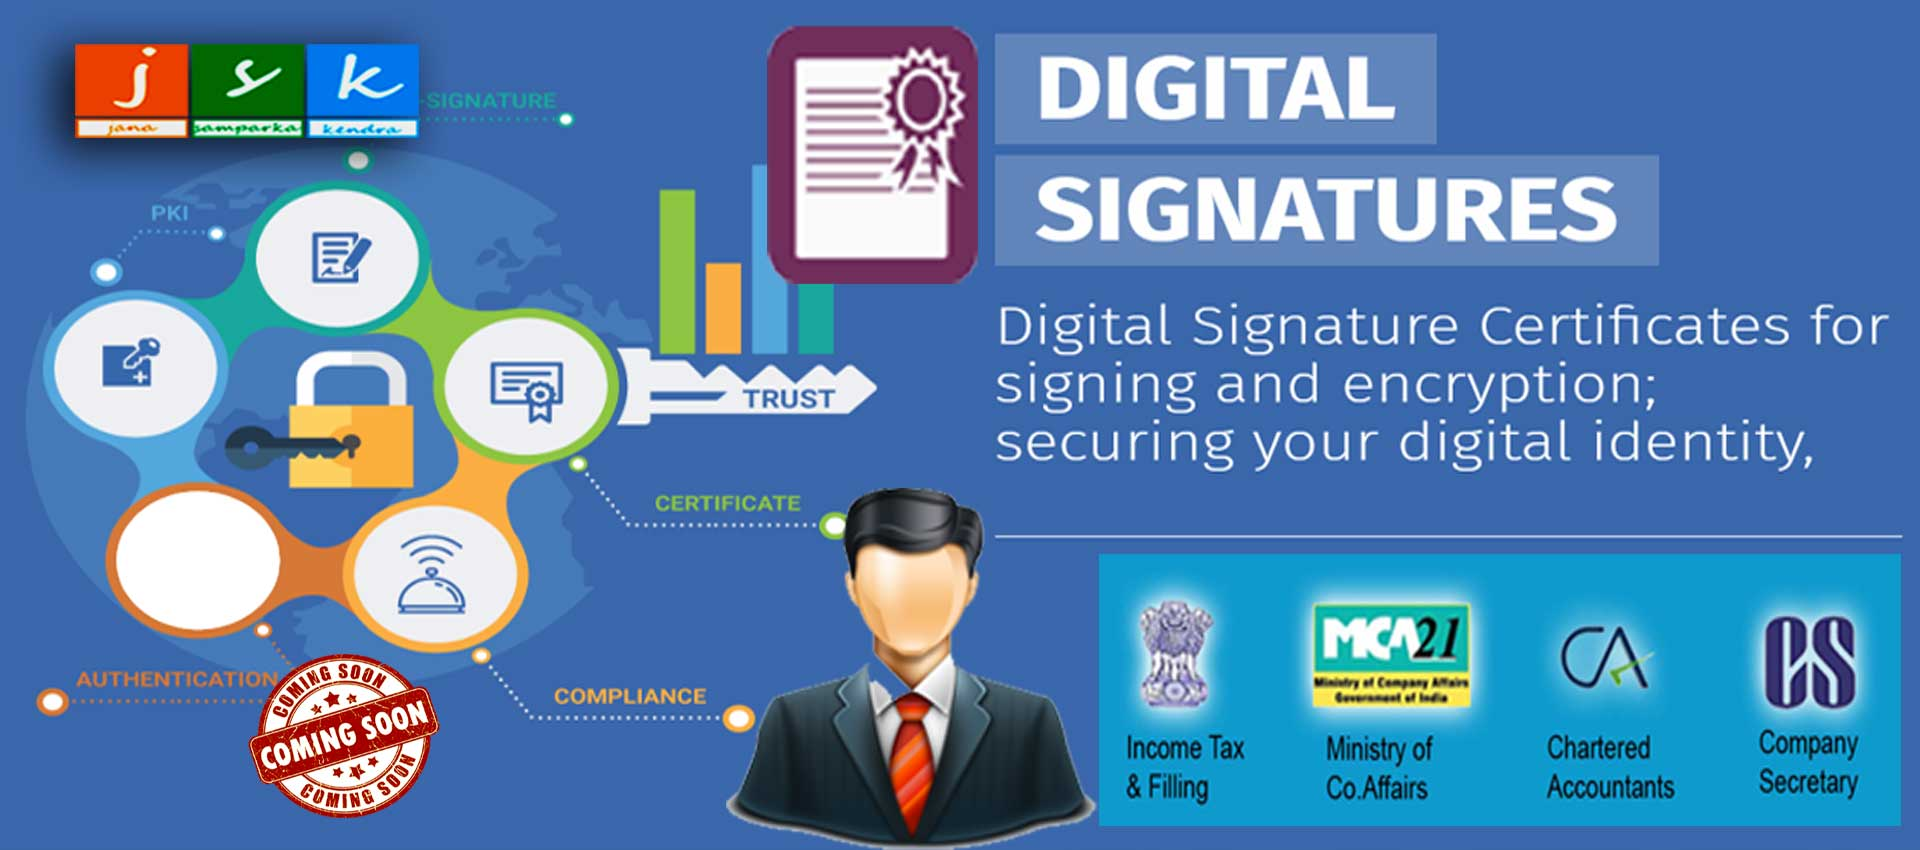 JSK DIGITAL SIGNATURE